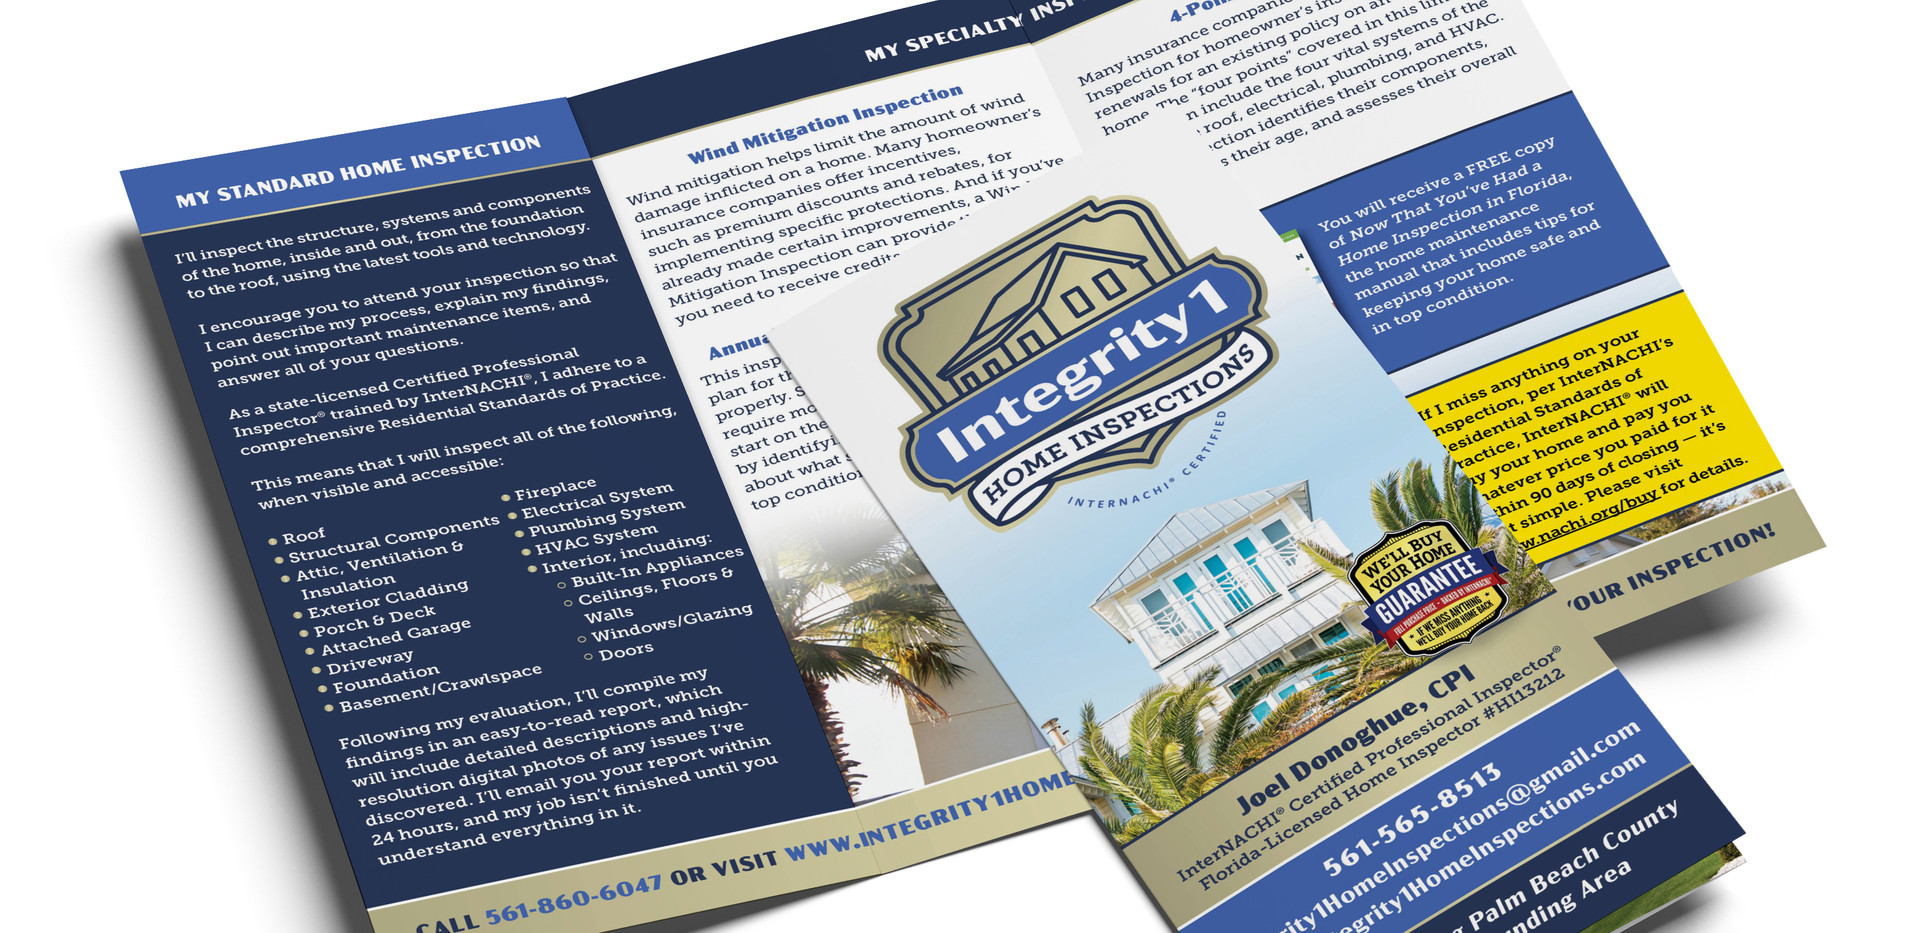 Integrity 1 Home Inspections